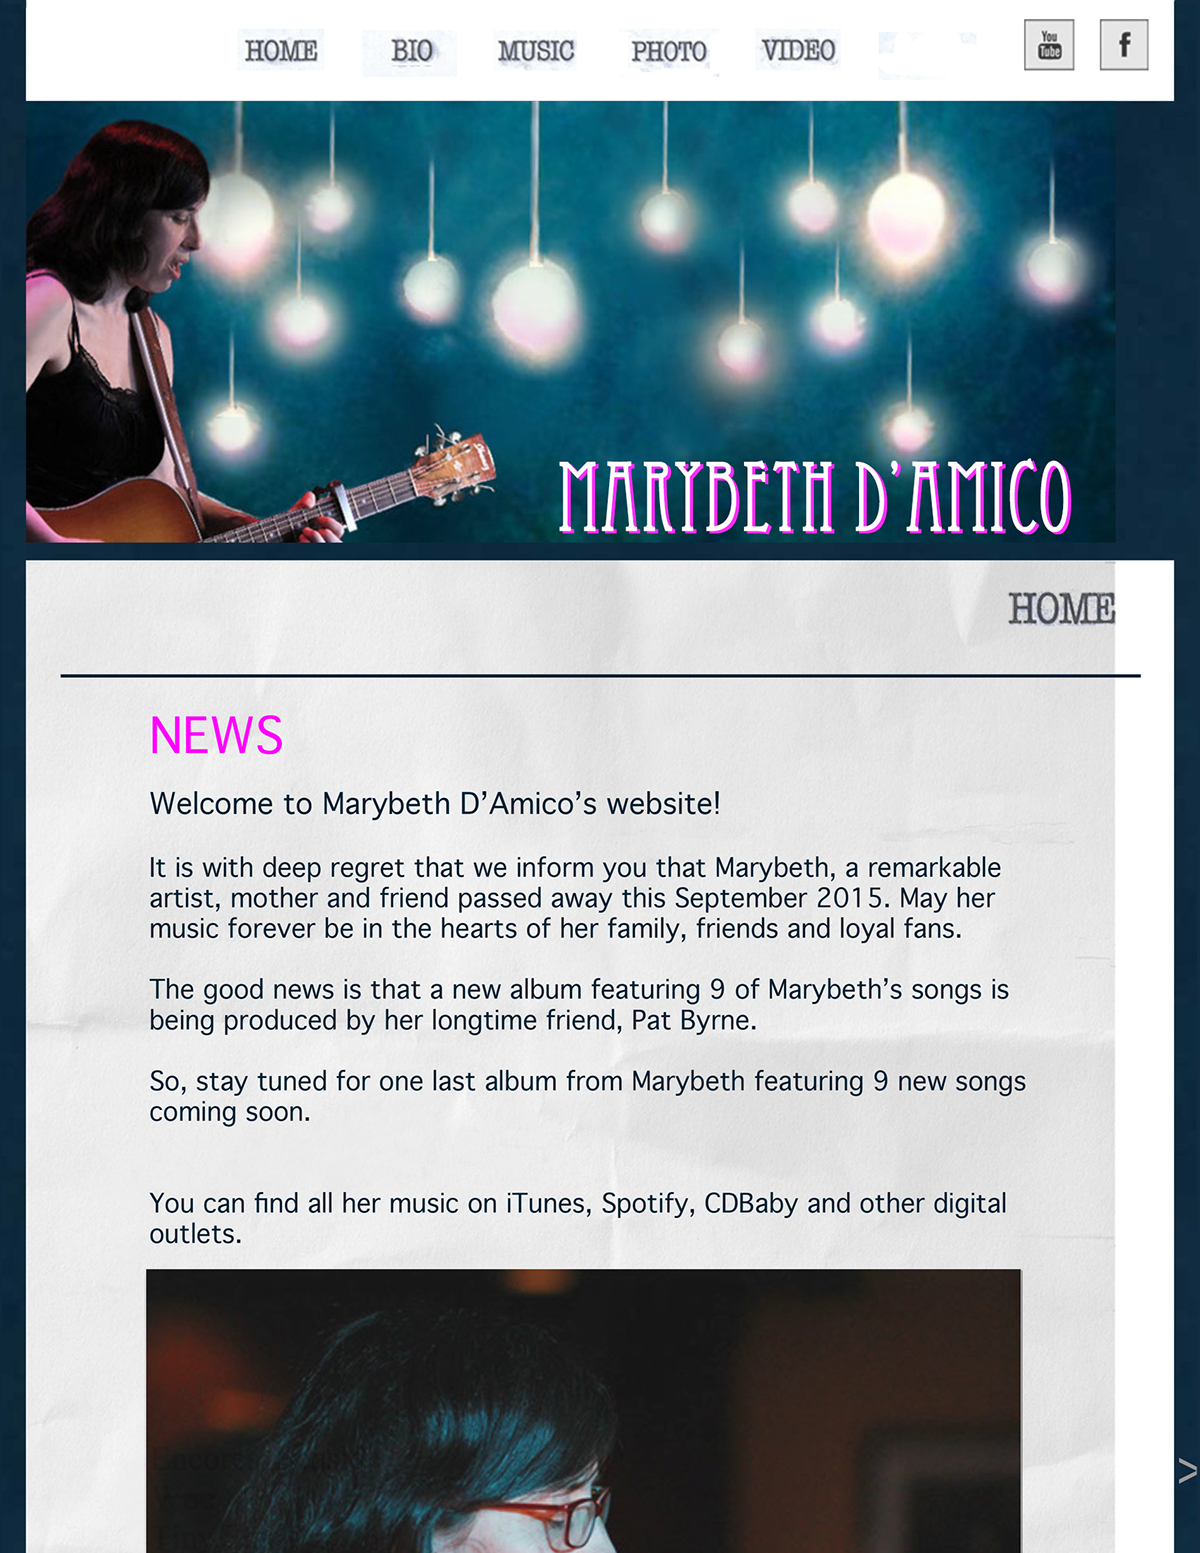 Website for Marybeth D'Amico, musician on Behance